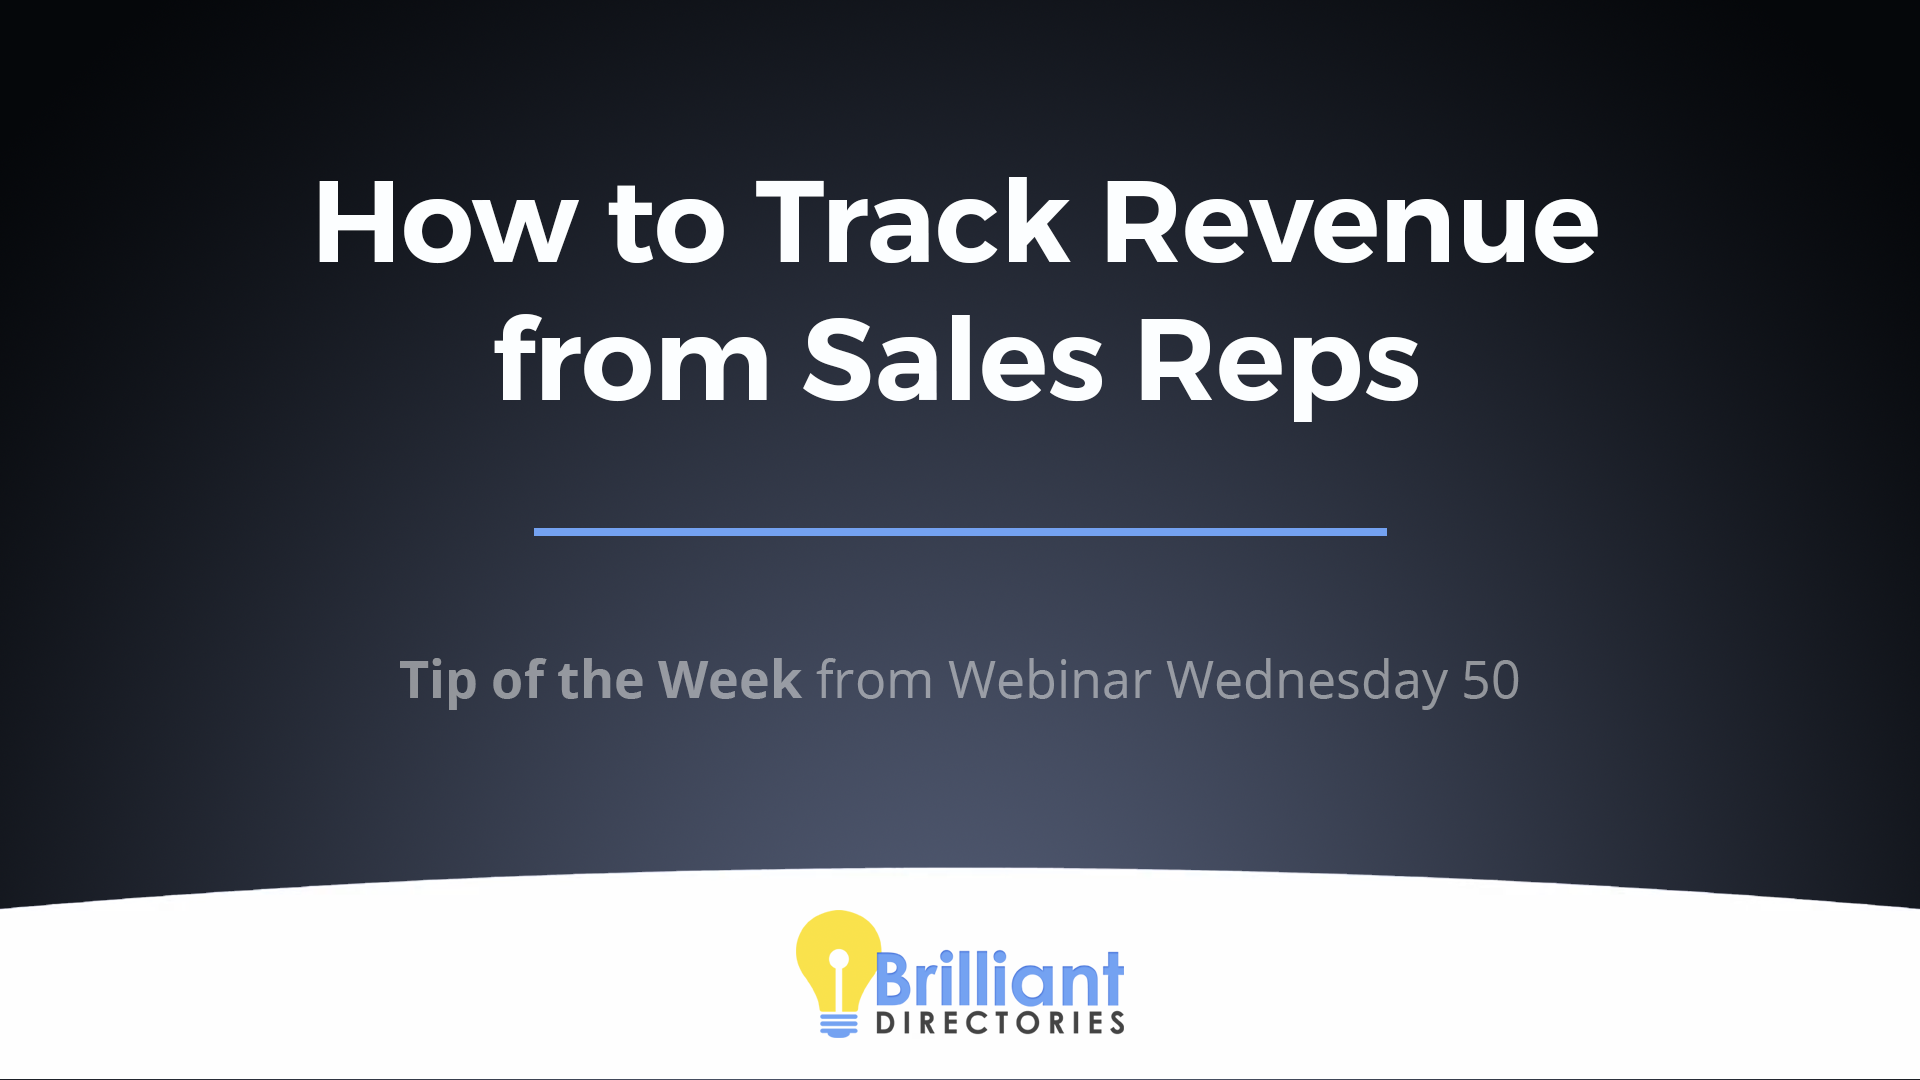 https://www.brilliantdirectories.com/blog/how-to-track-revenue-from-sales-reps-directory-website-tips